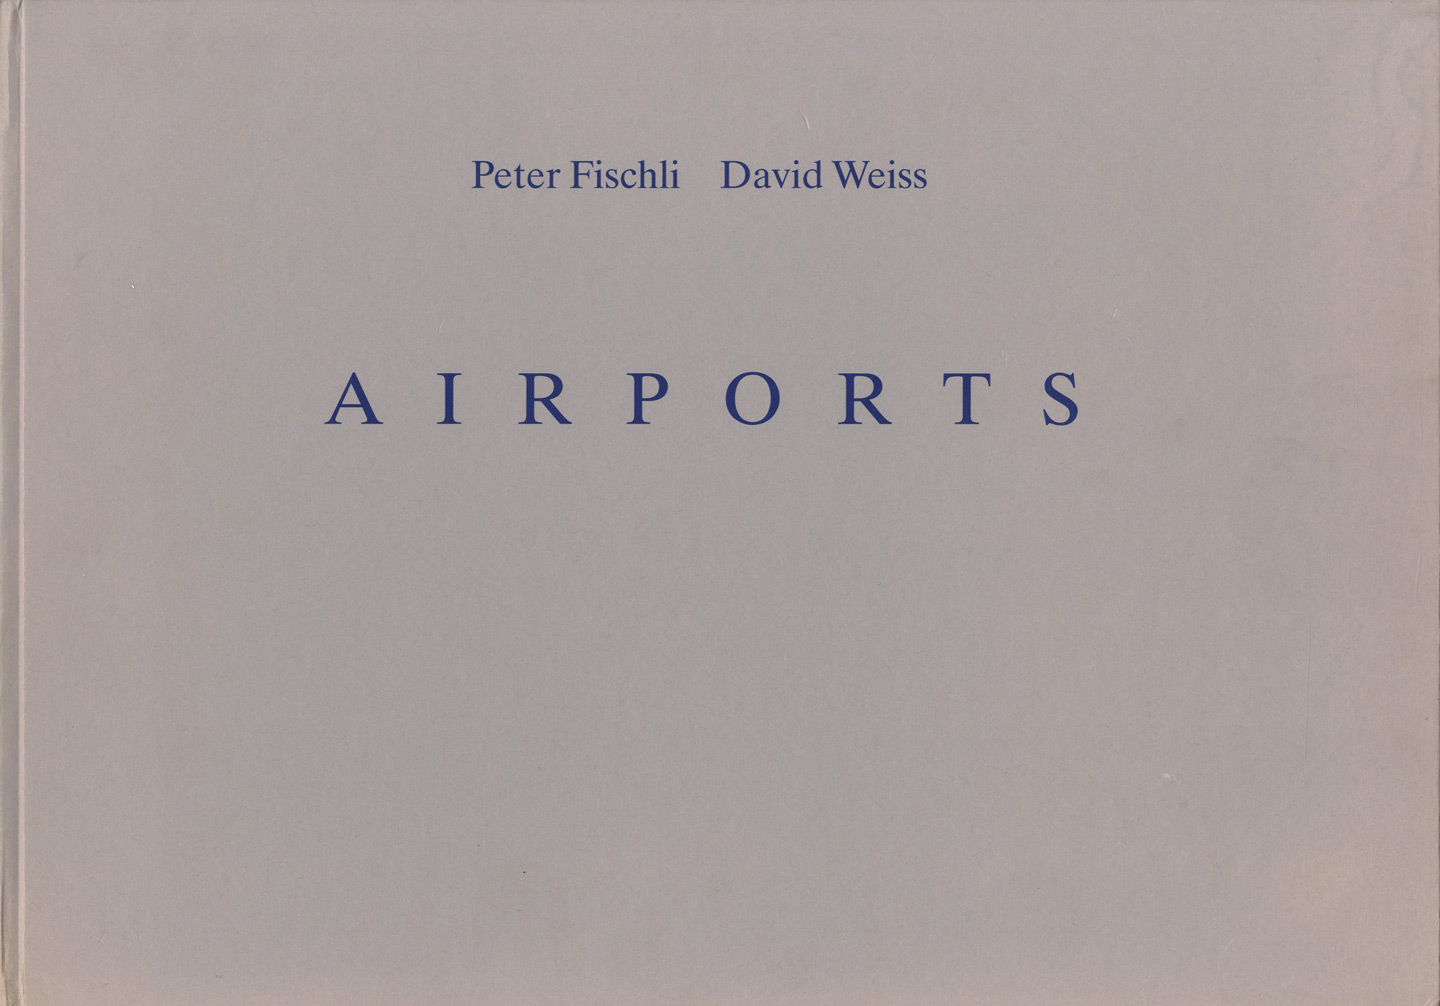 Peter Fischli and David Weiss: Airports